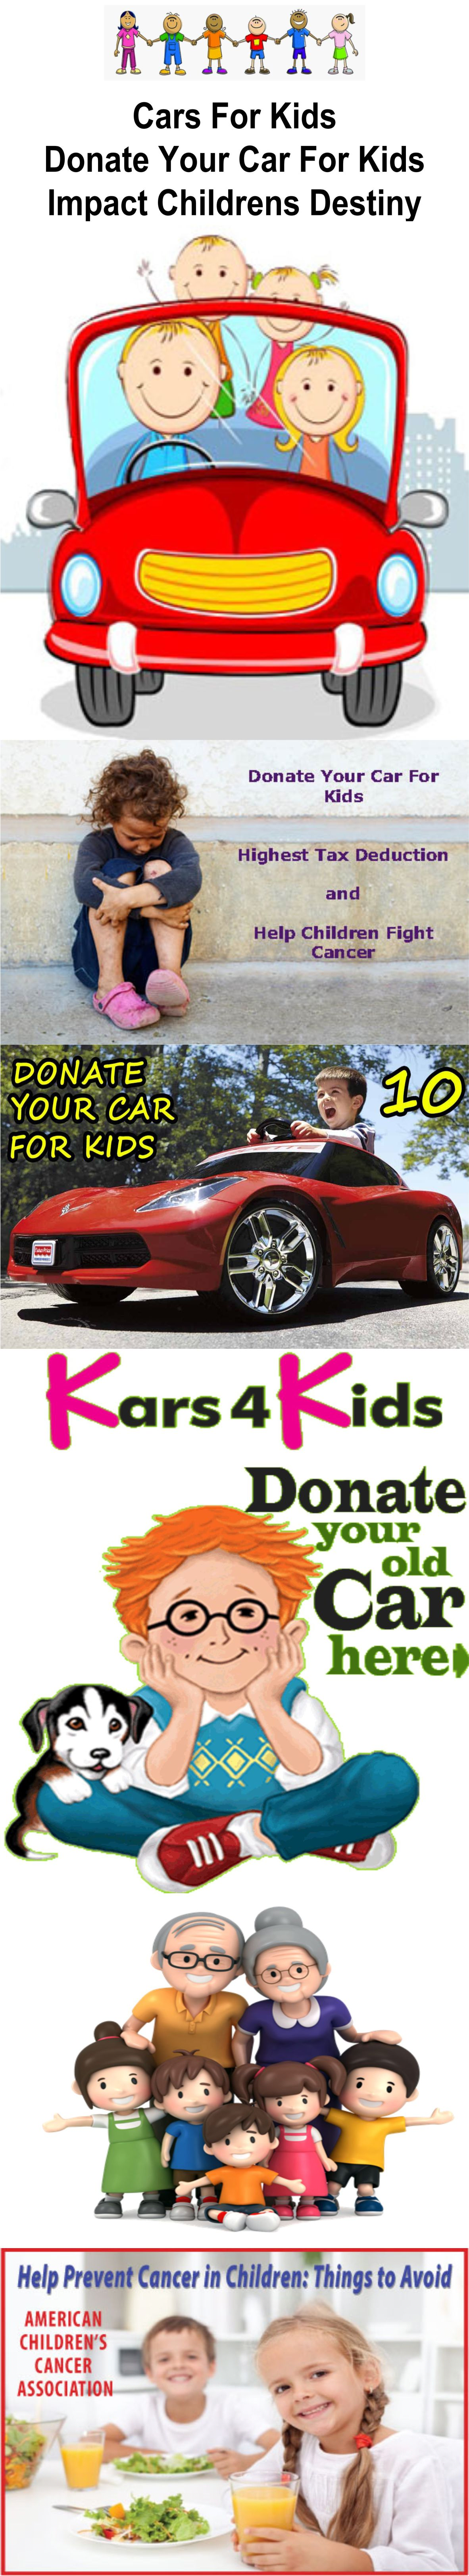 Donate your car for kids 2018